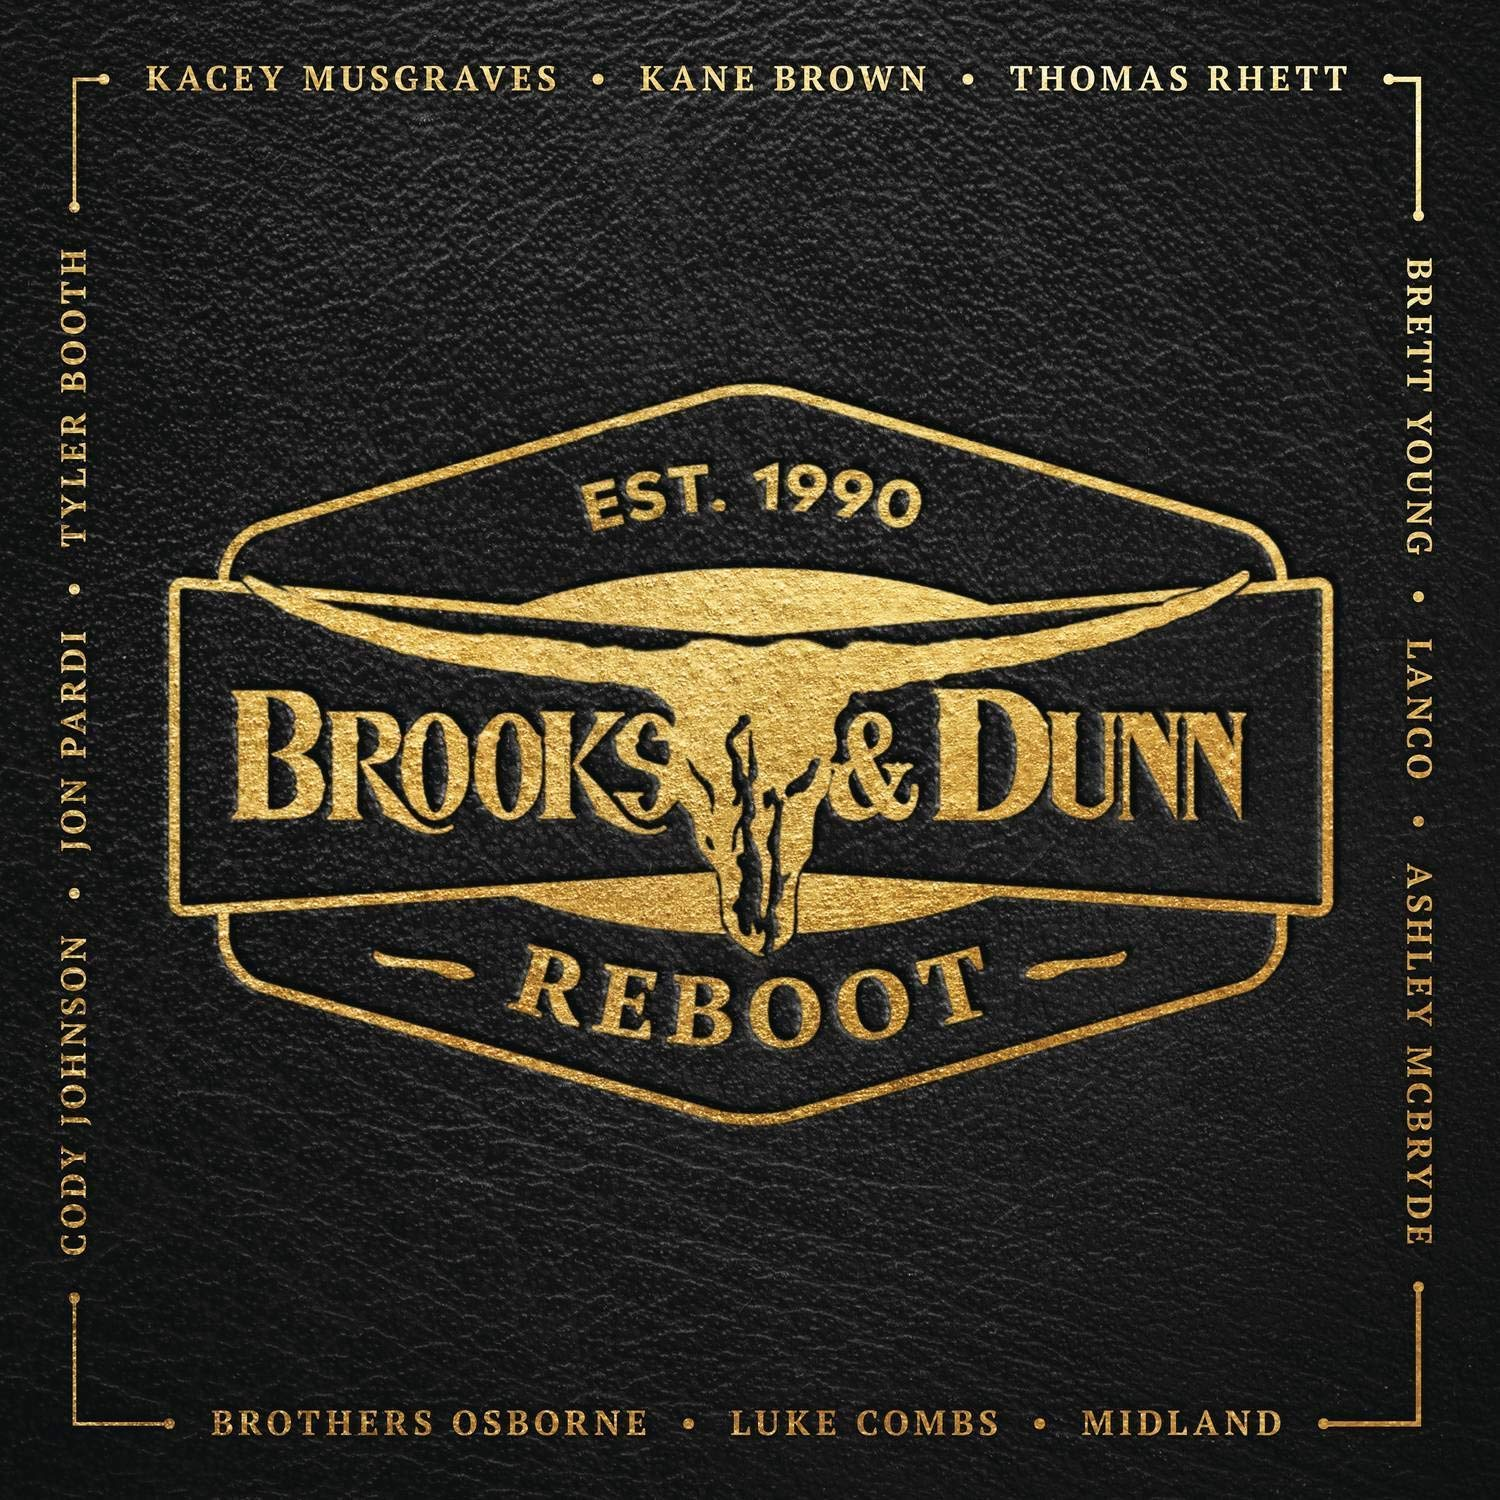 Brooks & Dunn - Reboot [LP]